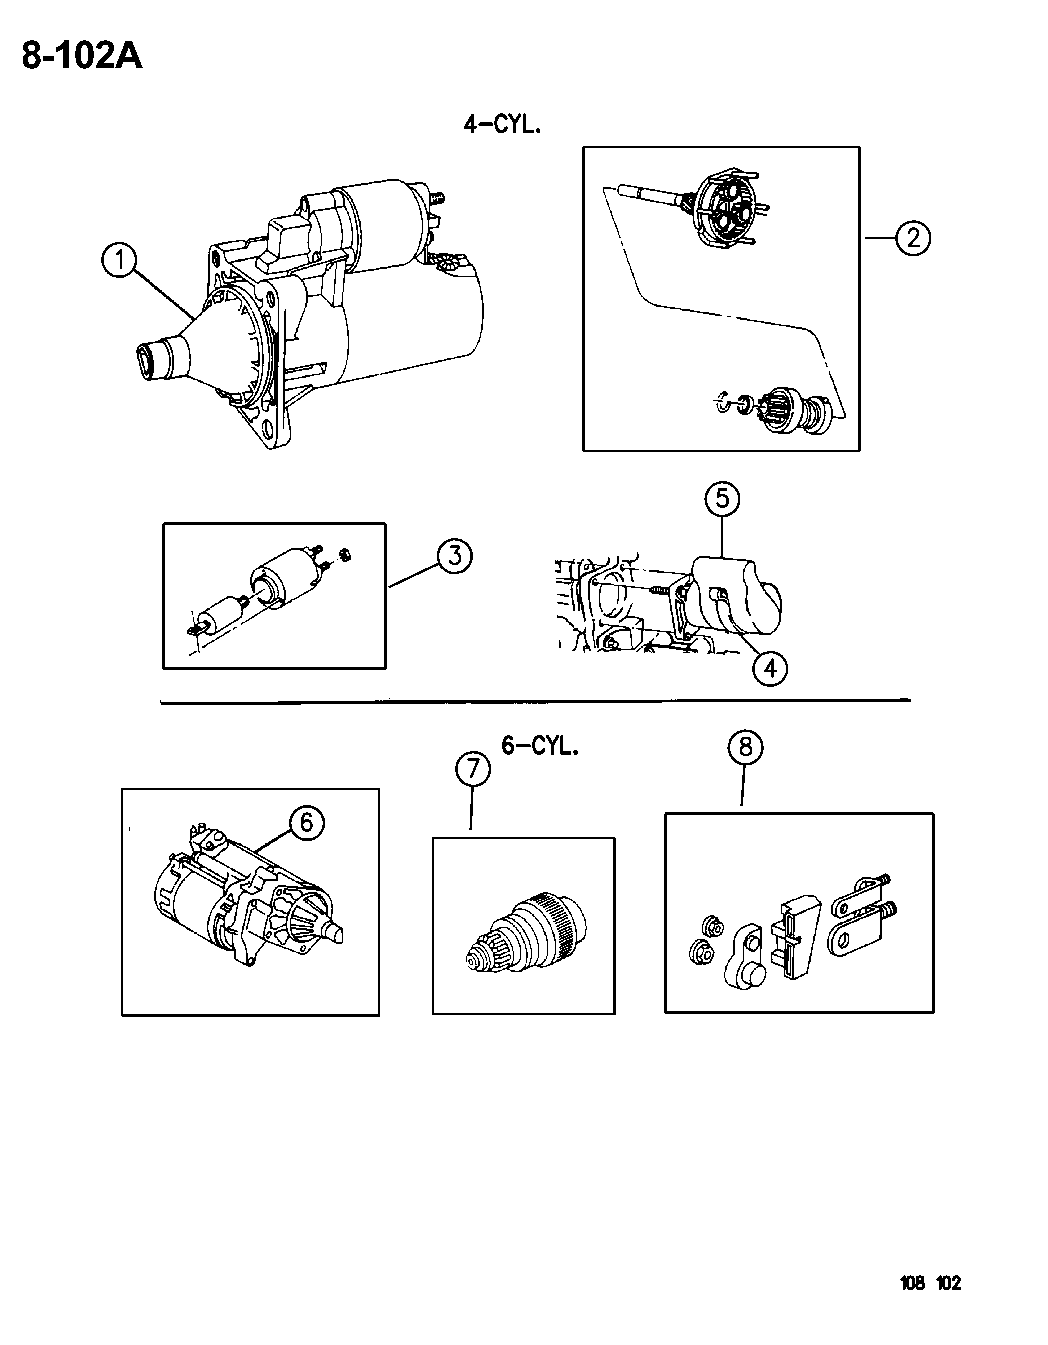 1996 Chrysler Sebring Convertible Starter Engine Motor Diagram